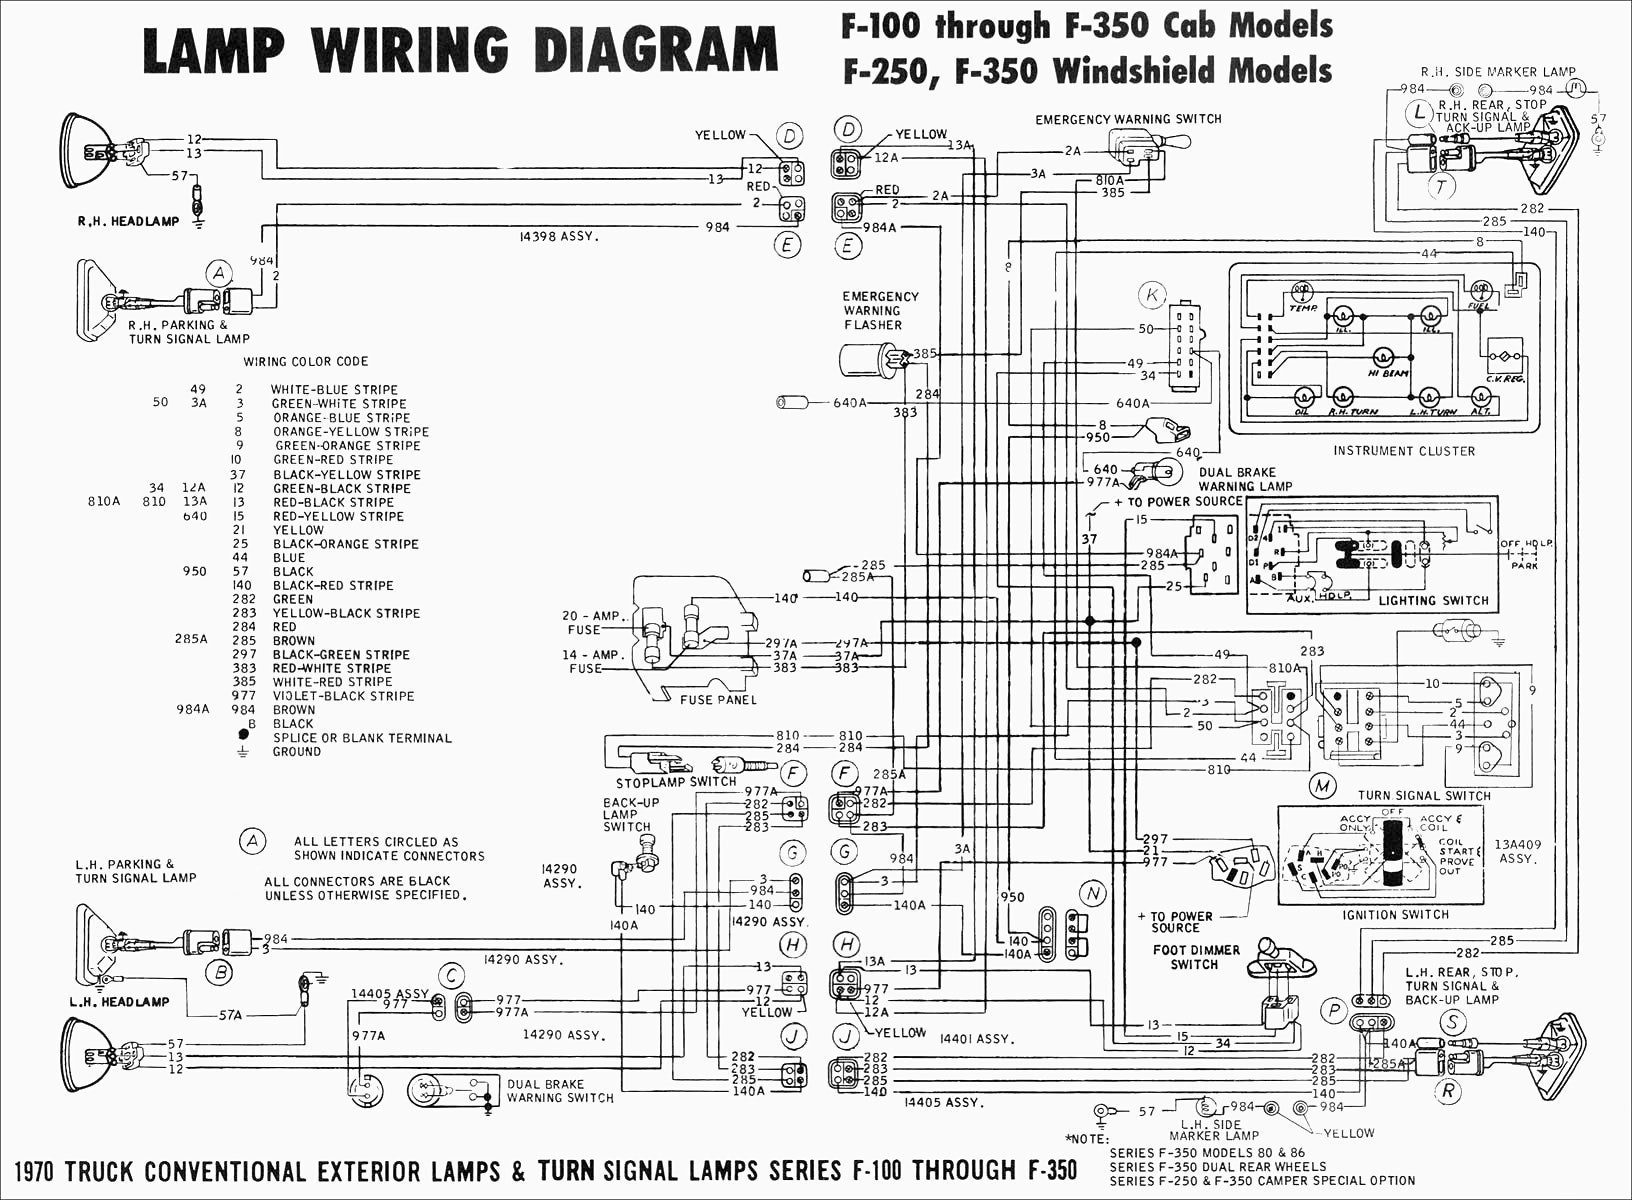 Wiring Diagram for Mtd Ignition Switch Fresh Wiring Diagram Amplifier Archives Joescablecar Fresh Wiring